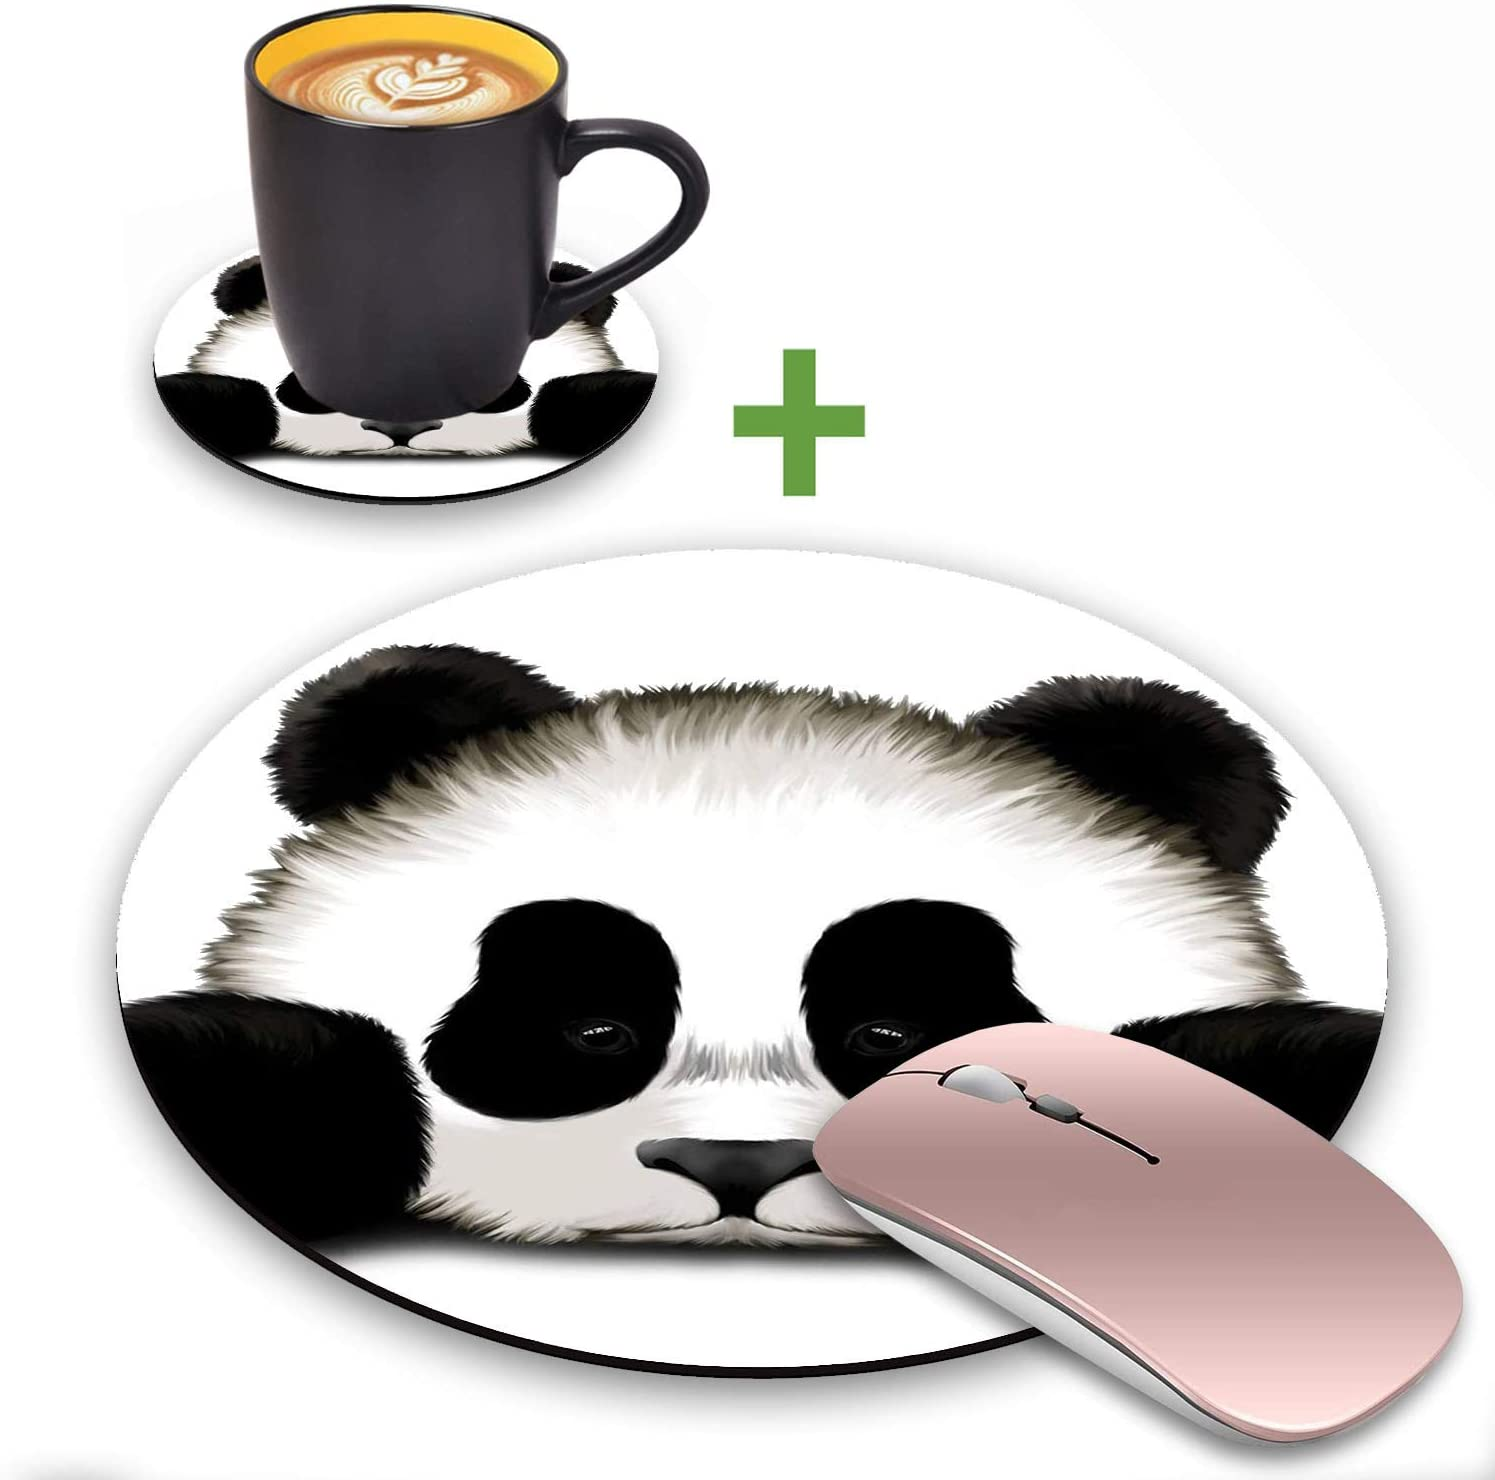 LACOMA Round Mouse Pad and Coasters Set, Cute Panda Design Mouse Pad, Non-Slip Rubber Base Mouse Pads for Laptop and Computer, Cute Design Desk Accessories